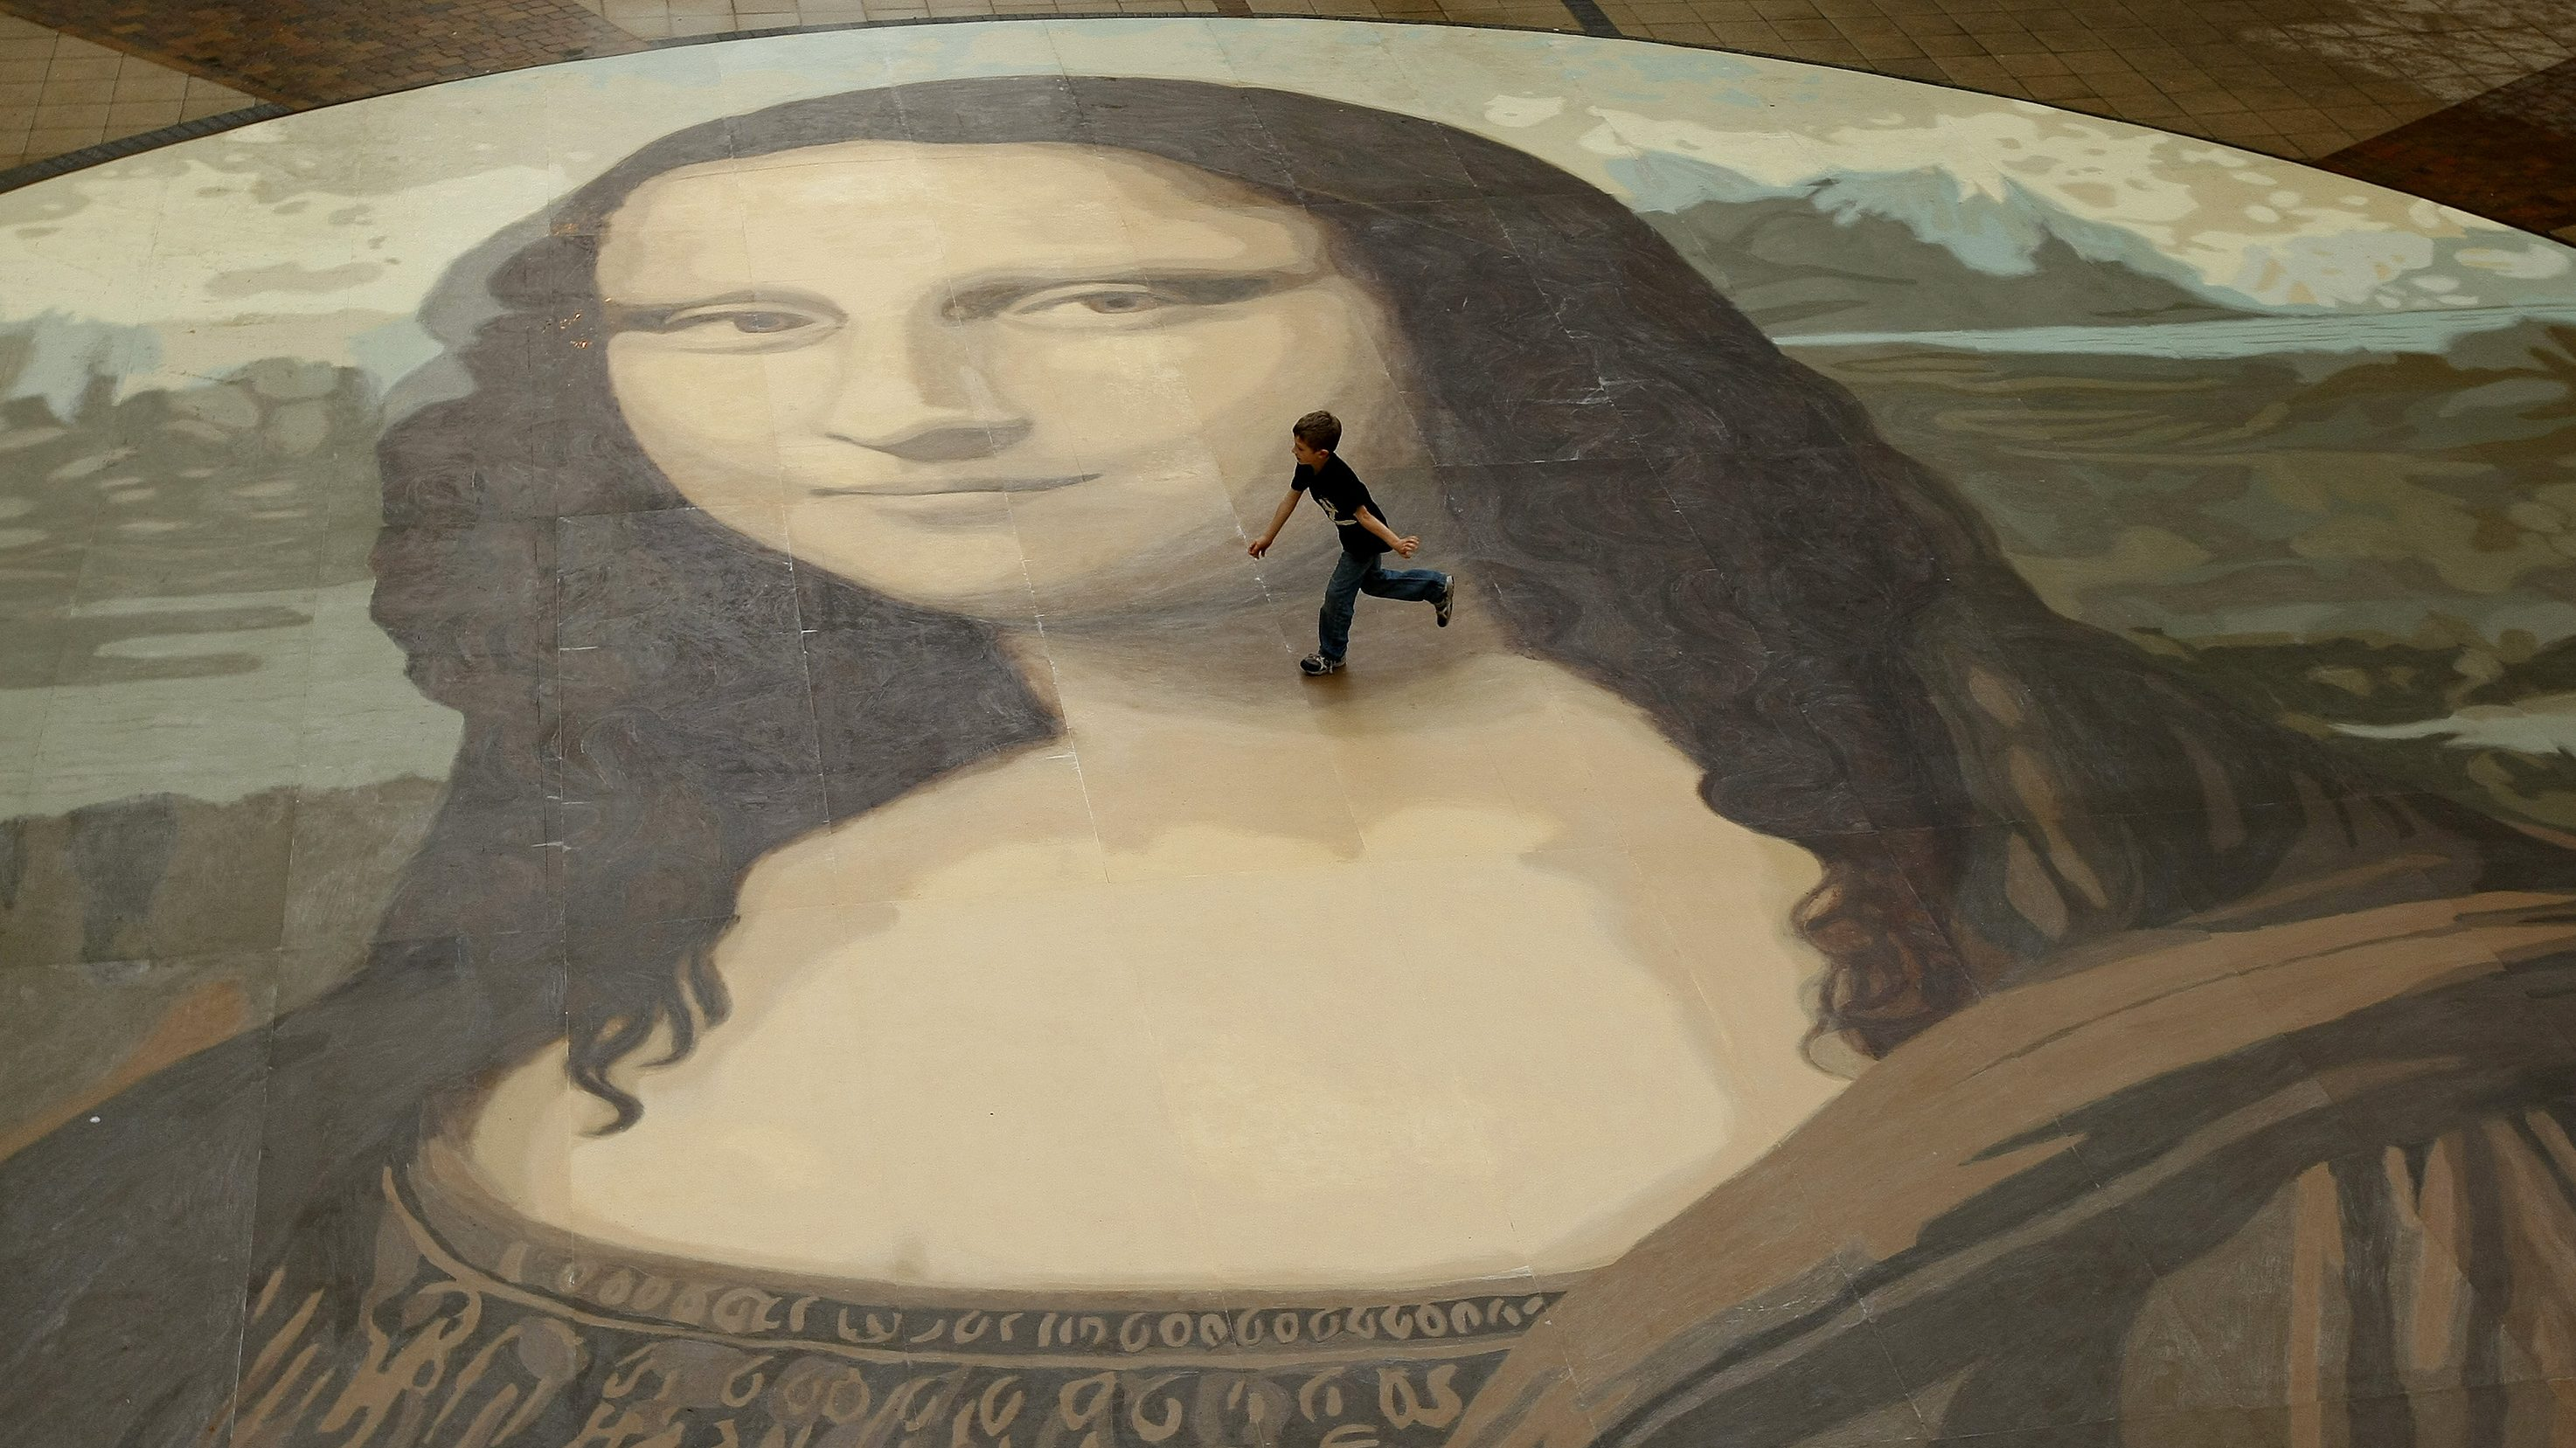 A boy runs across a giant copy of the Mona Lisa as it is unveiled in Wrexham, north Wales, October 28, 2009. The giant version of Leonardo da Vinci's masterpiece measuring 17.5 metres across and 50 times bigger than the original, is an attempt to produce the largest ever reproduction of the painting.